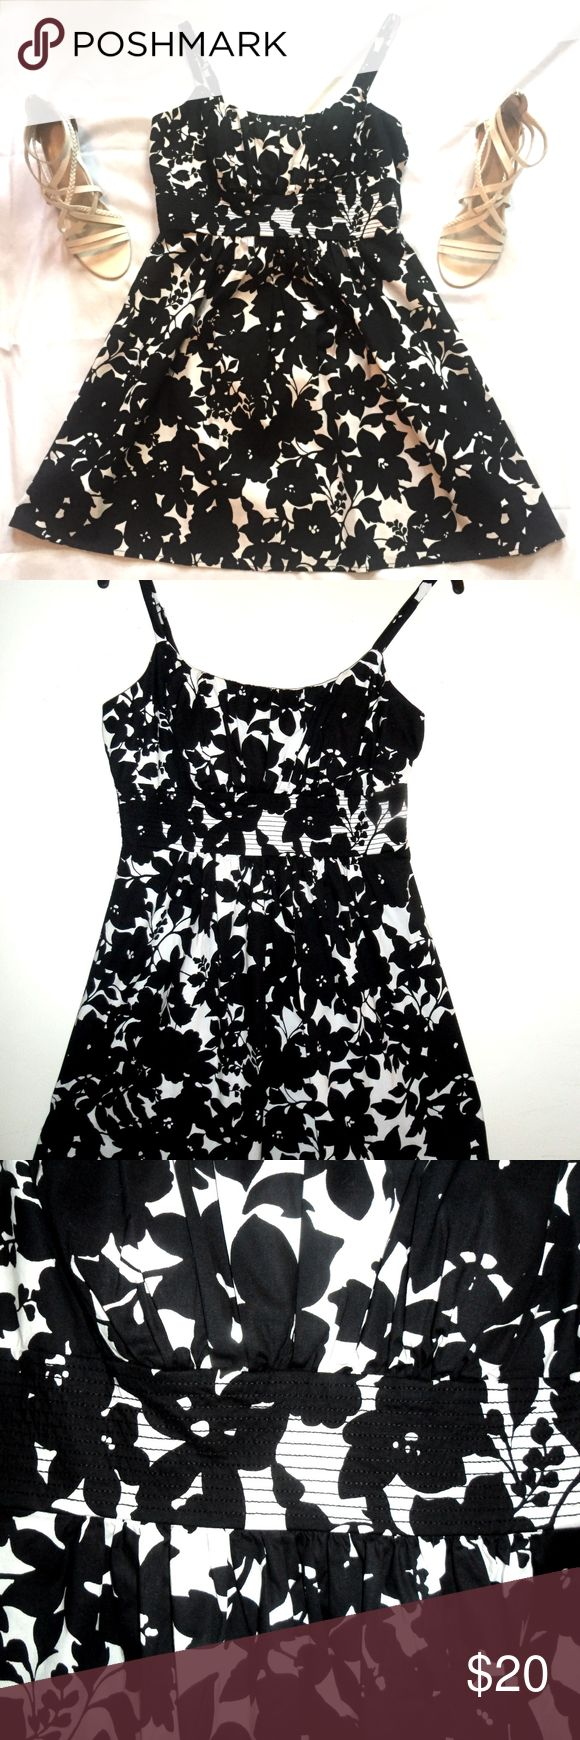 "FLORAL BLACK AND WHITE SUNDRESS Flattering BLACK AND WHITE FLORAL SUNDRESS with adjustable SPAGHETTI STRAPS. Cute ruched neckline and bust design and a decorative empire waist band with black stitching. Bust has a slightly padded bra. Back zip. Fabric has some stretch.CONDITION: This dress was bought new, worn once, and dry cleaned and then stored. Looks new! No Defect or visible signs of wear. L-30"", BUST-40"",WAIST-34"",Hips-not fitted,flare;closure-back zipper-13"". Care: machine wash cold…"